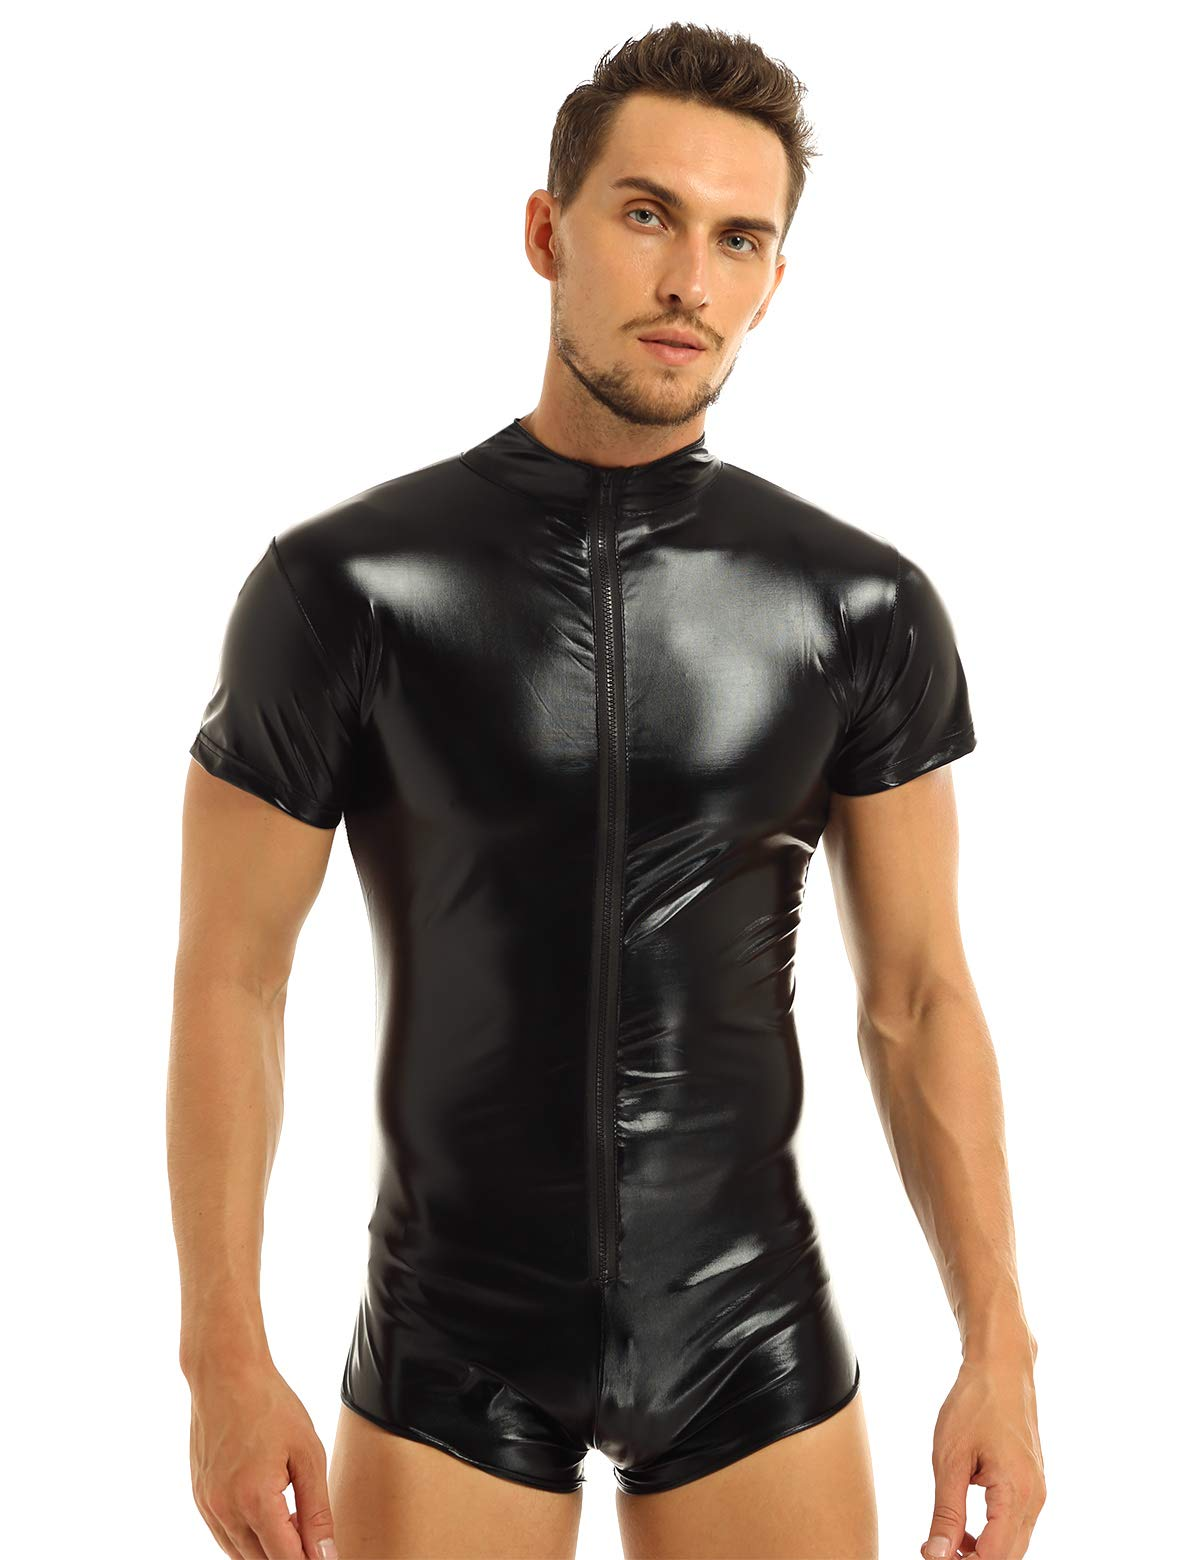 Msemis Mens Metallic Shiny Front Zipper Short Sleeve Leotard Bodysuit Boxer Briefs Jumpsuit Black Medium